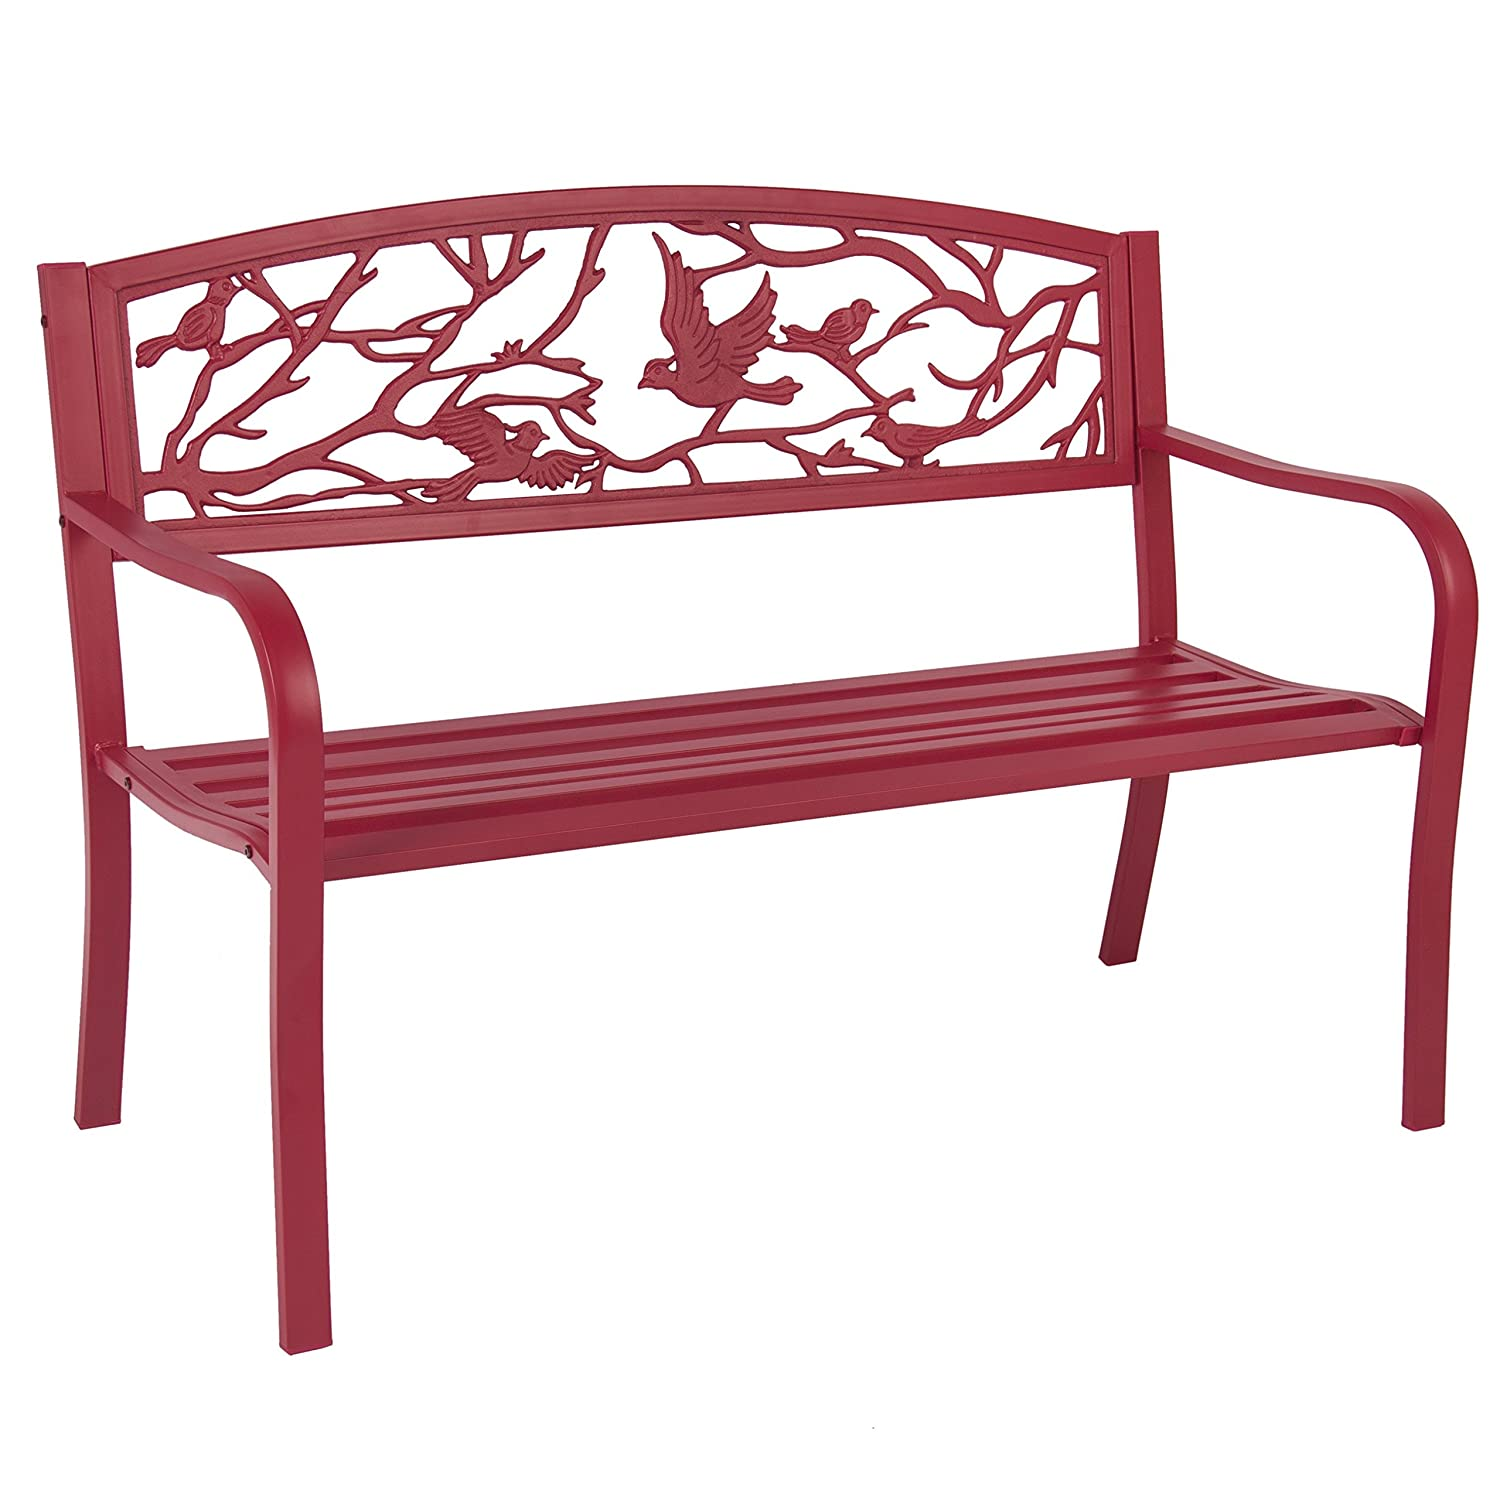 Amazon best choice products steel patio garden park bench amazon best choice products steel patio garden park bench outdoor living patio furniture rose red garden outdoor watchthetrailerfo